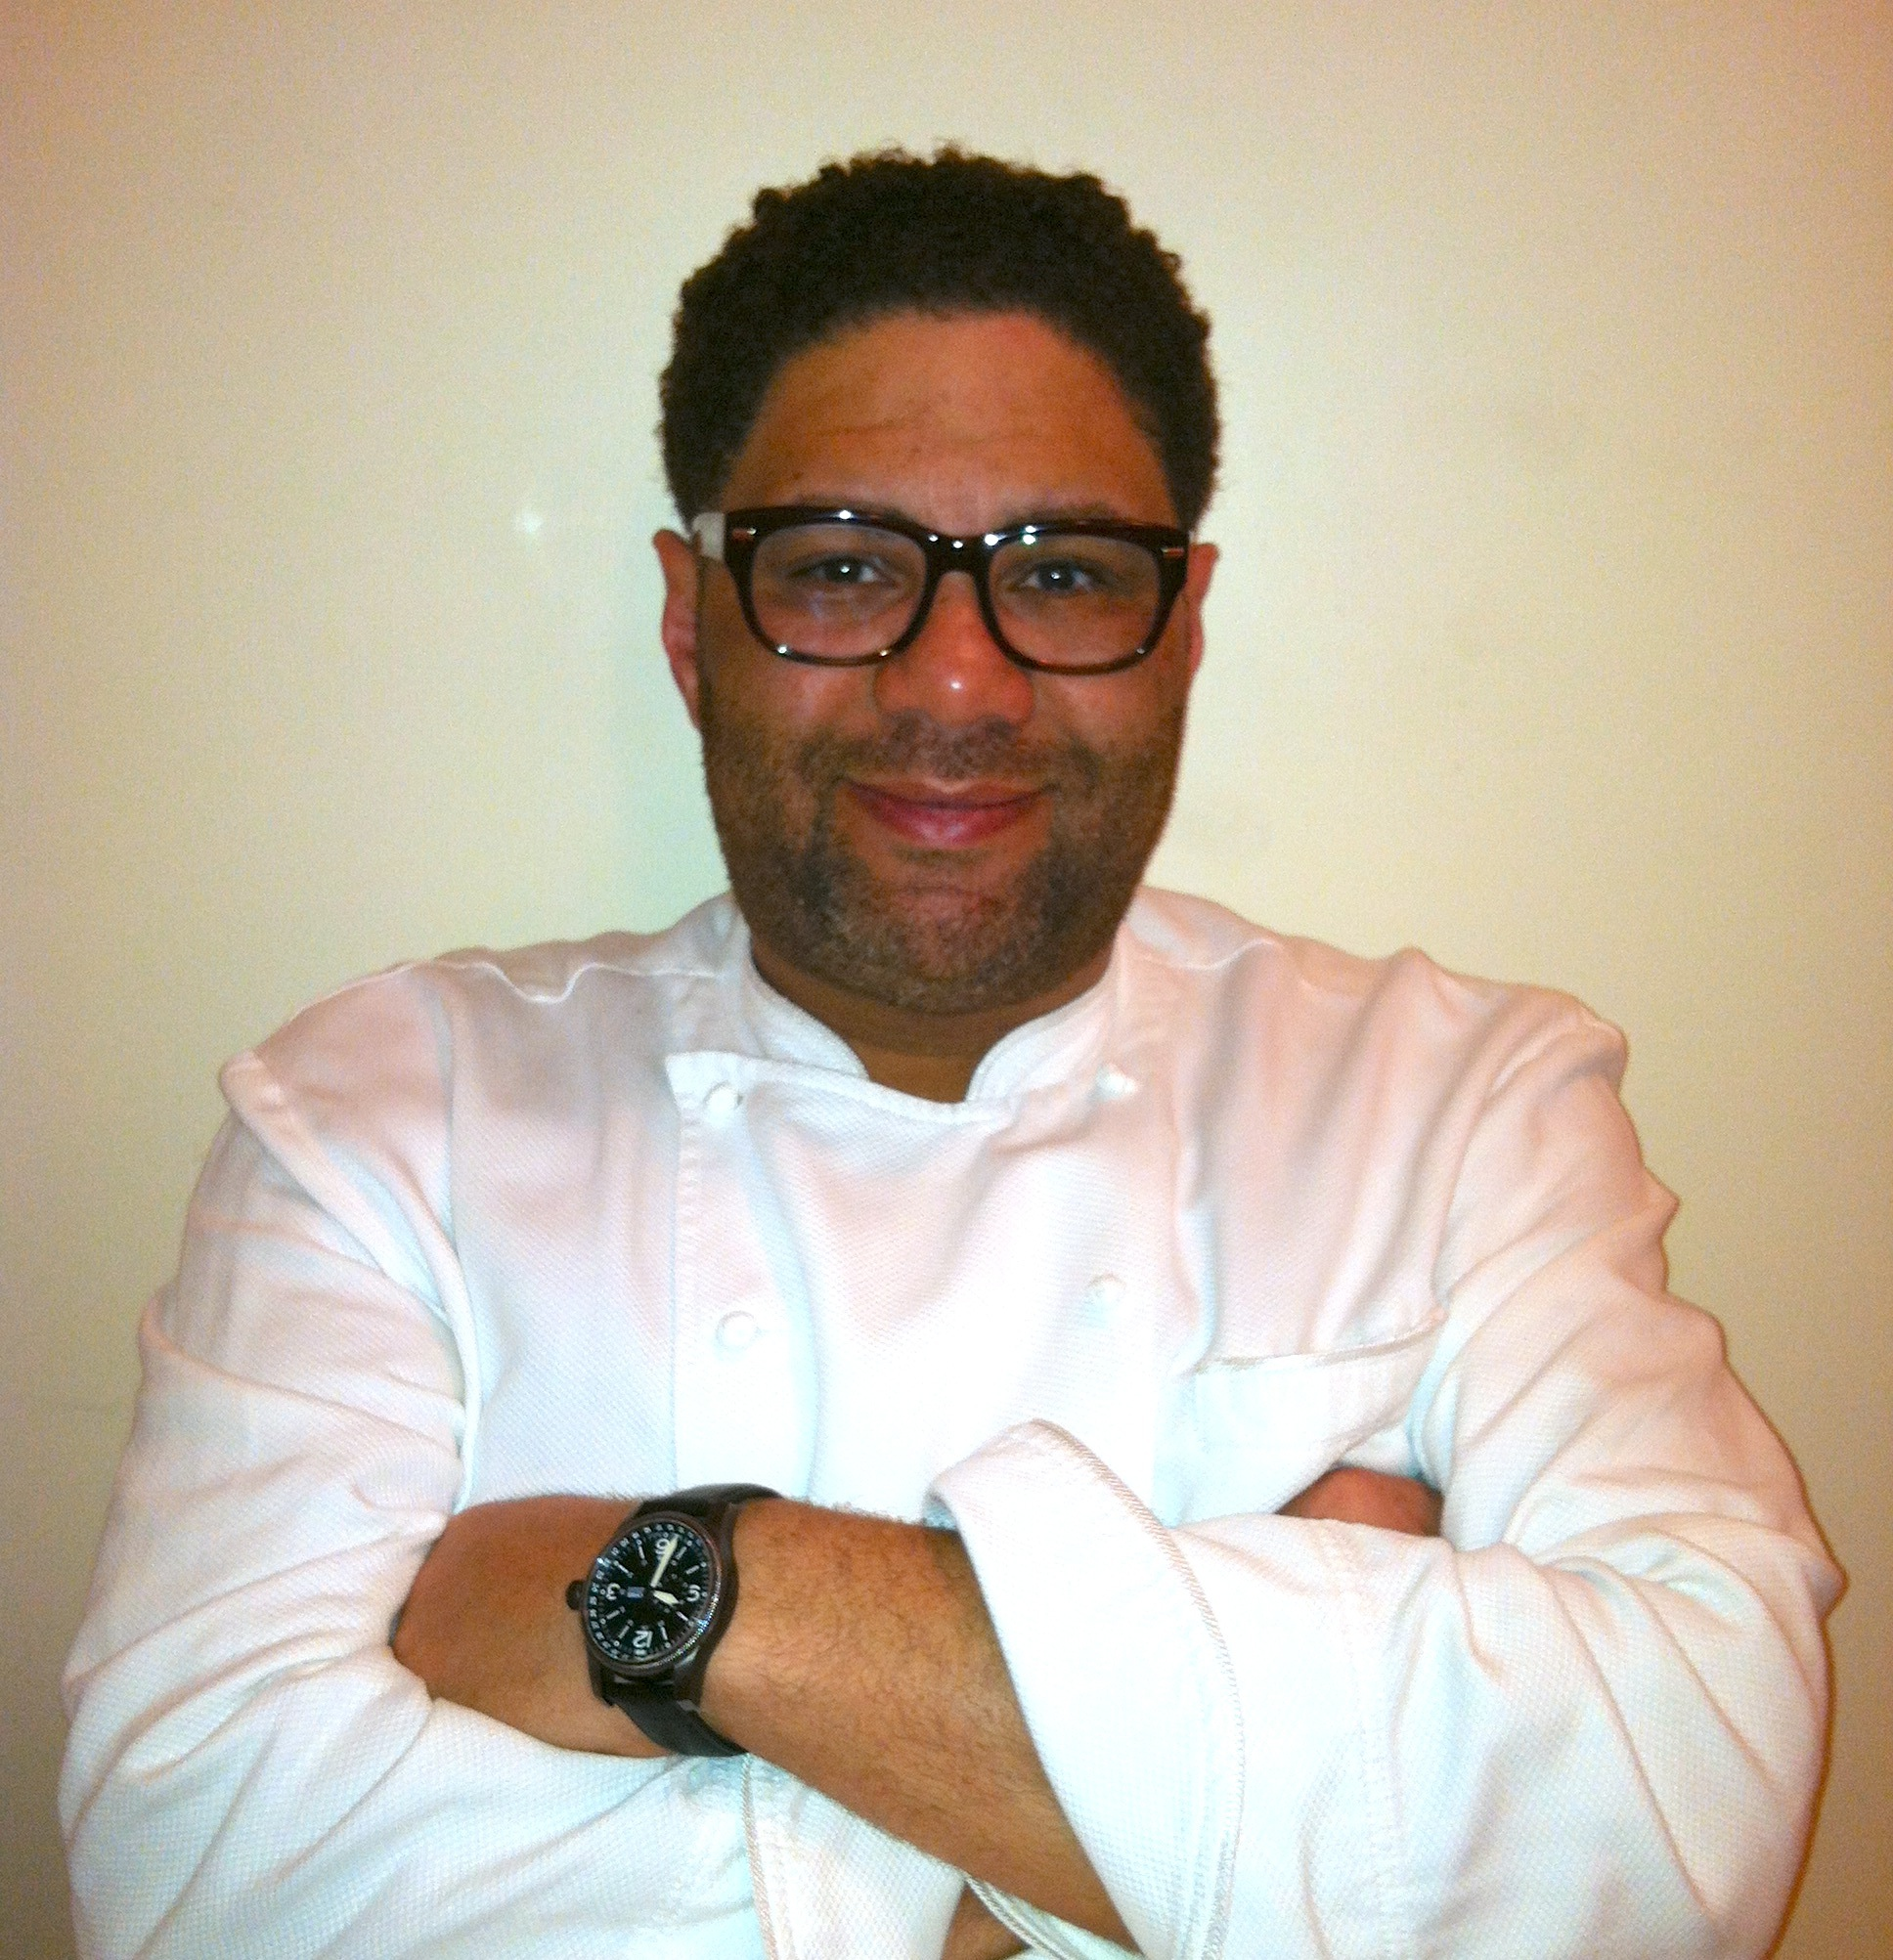 Chef Spotlight: CHEF KEITH GETER of 212 Steakhouse in NYC